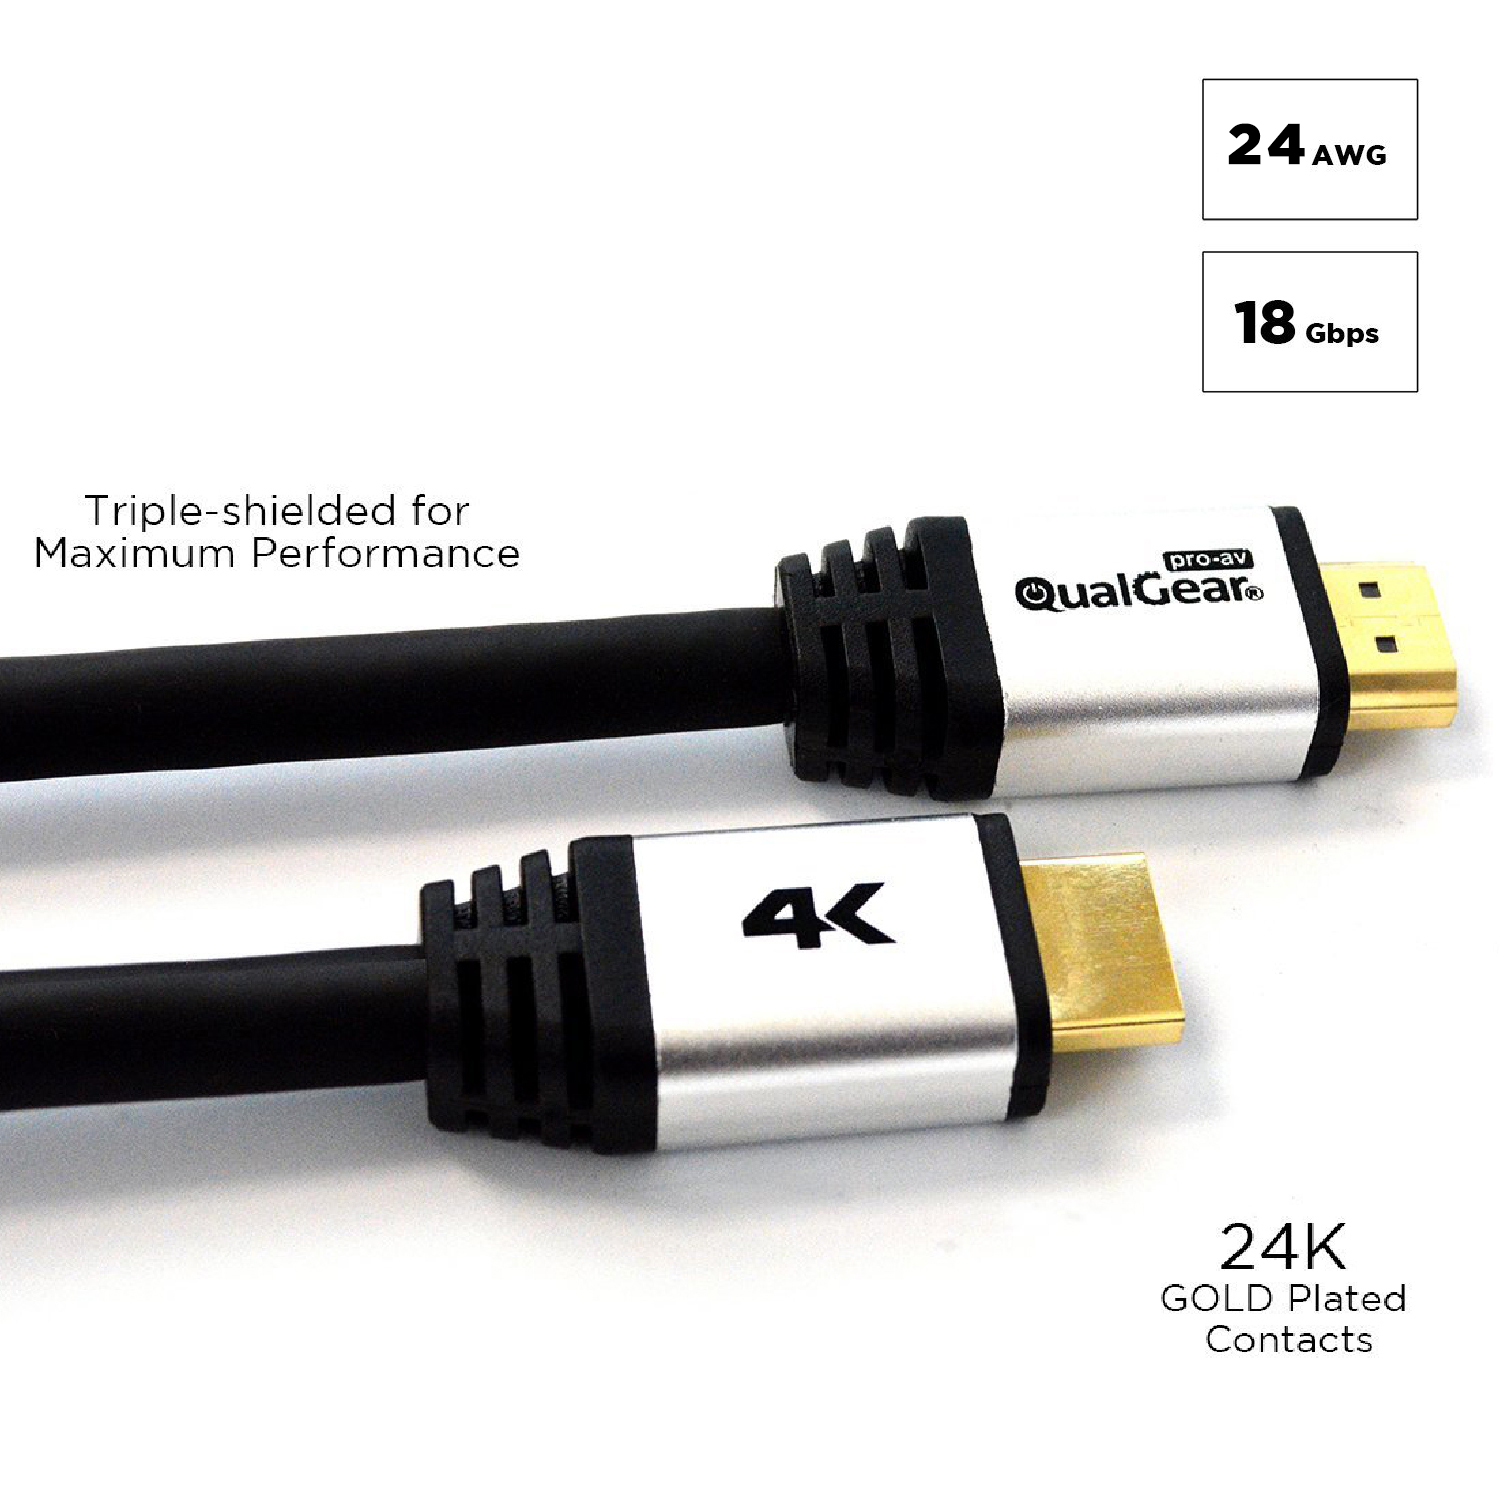 Qualgear 75 Feet High-Speed Long HDMI 2.0 Cable with 24K Gold Plated Contacts, Supports 4K Ultra HD, 3D, 18 Gbps, Audio Return Channel,CL3 Rated for In-Wall Use  (QG-CBL-HD20-75FT)